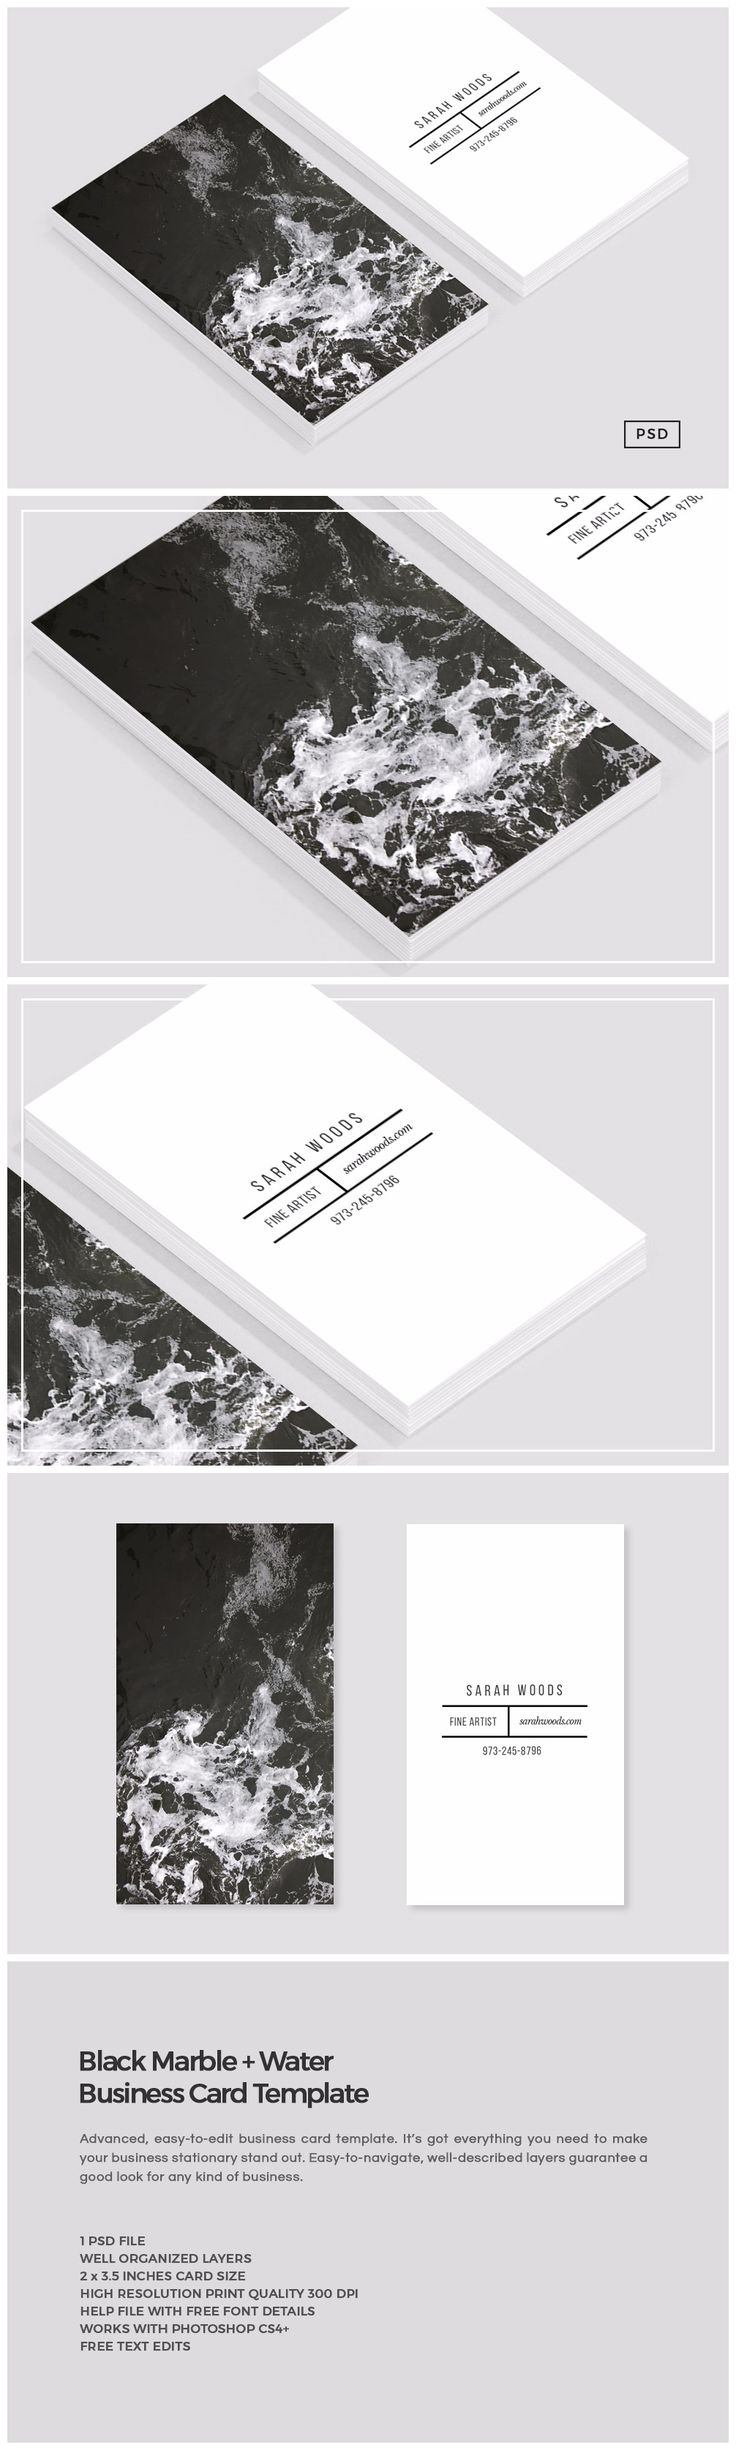 Hola business card template card templates business cards and hola business card template card templates business cards and design art reheart Image collections